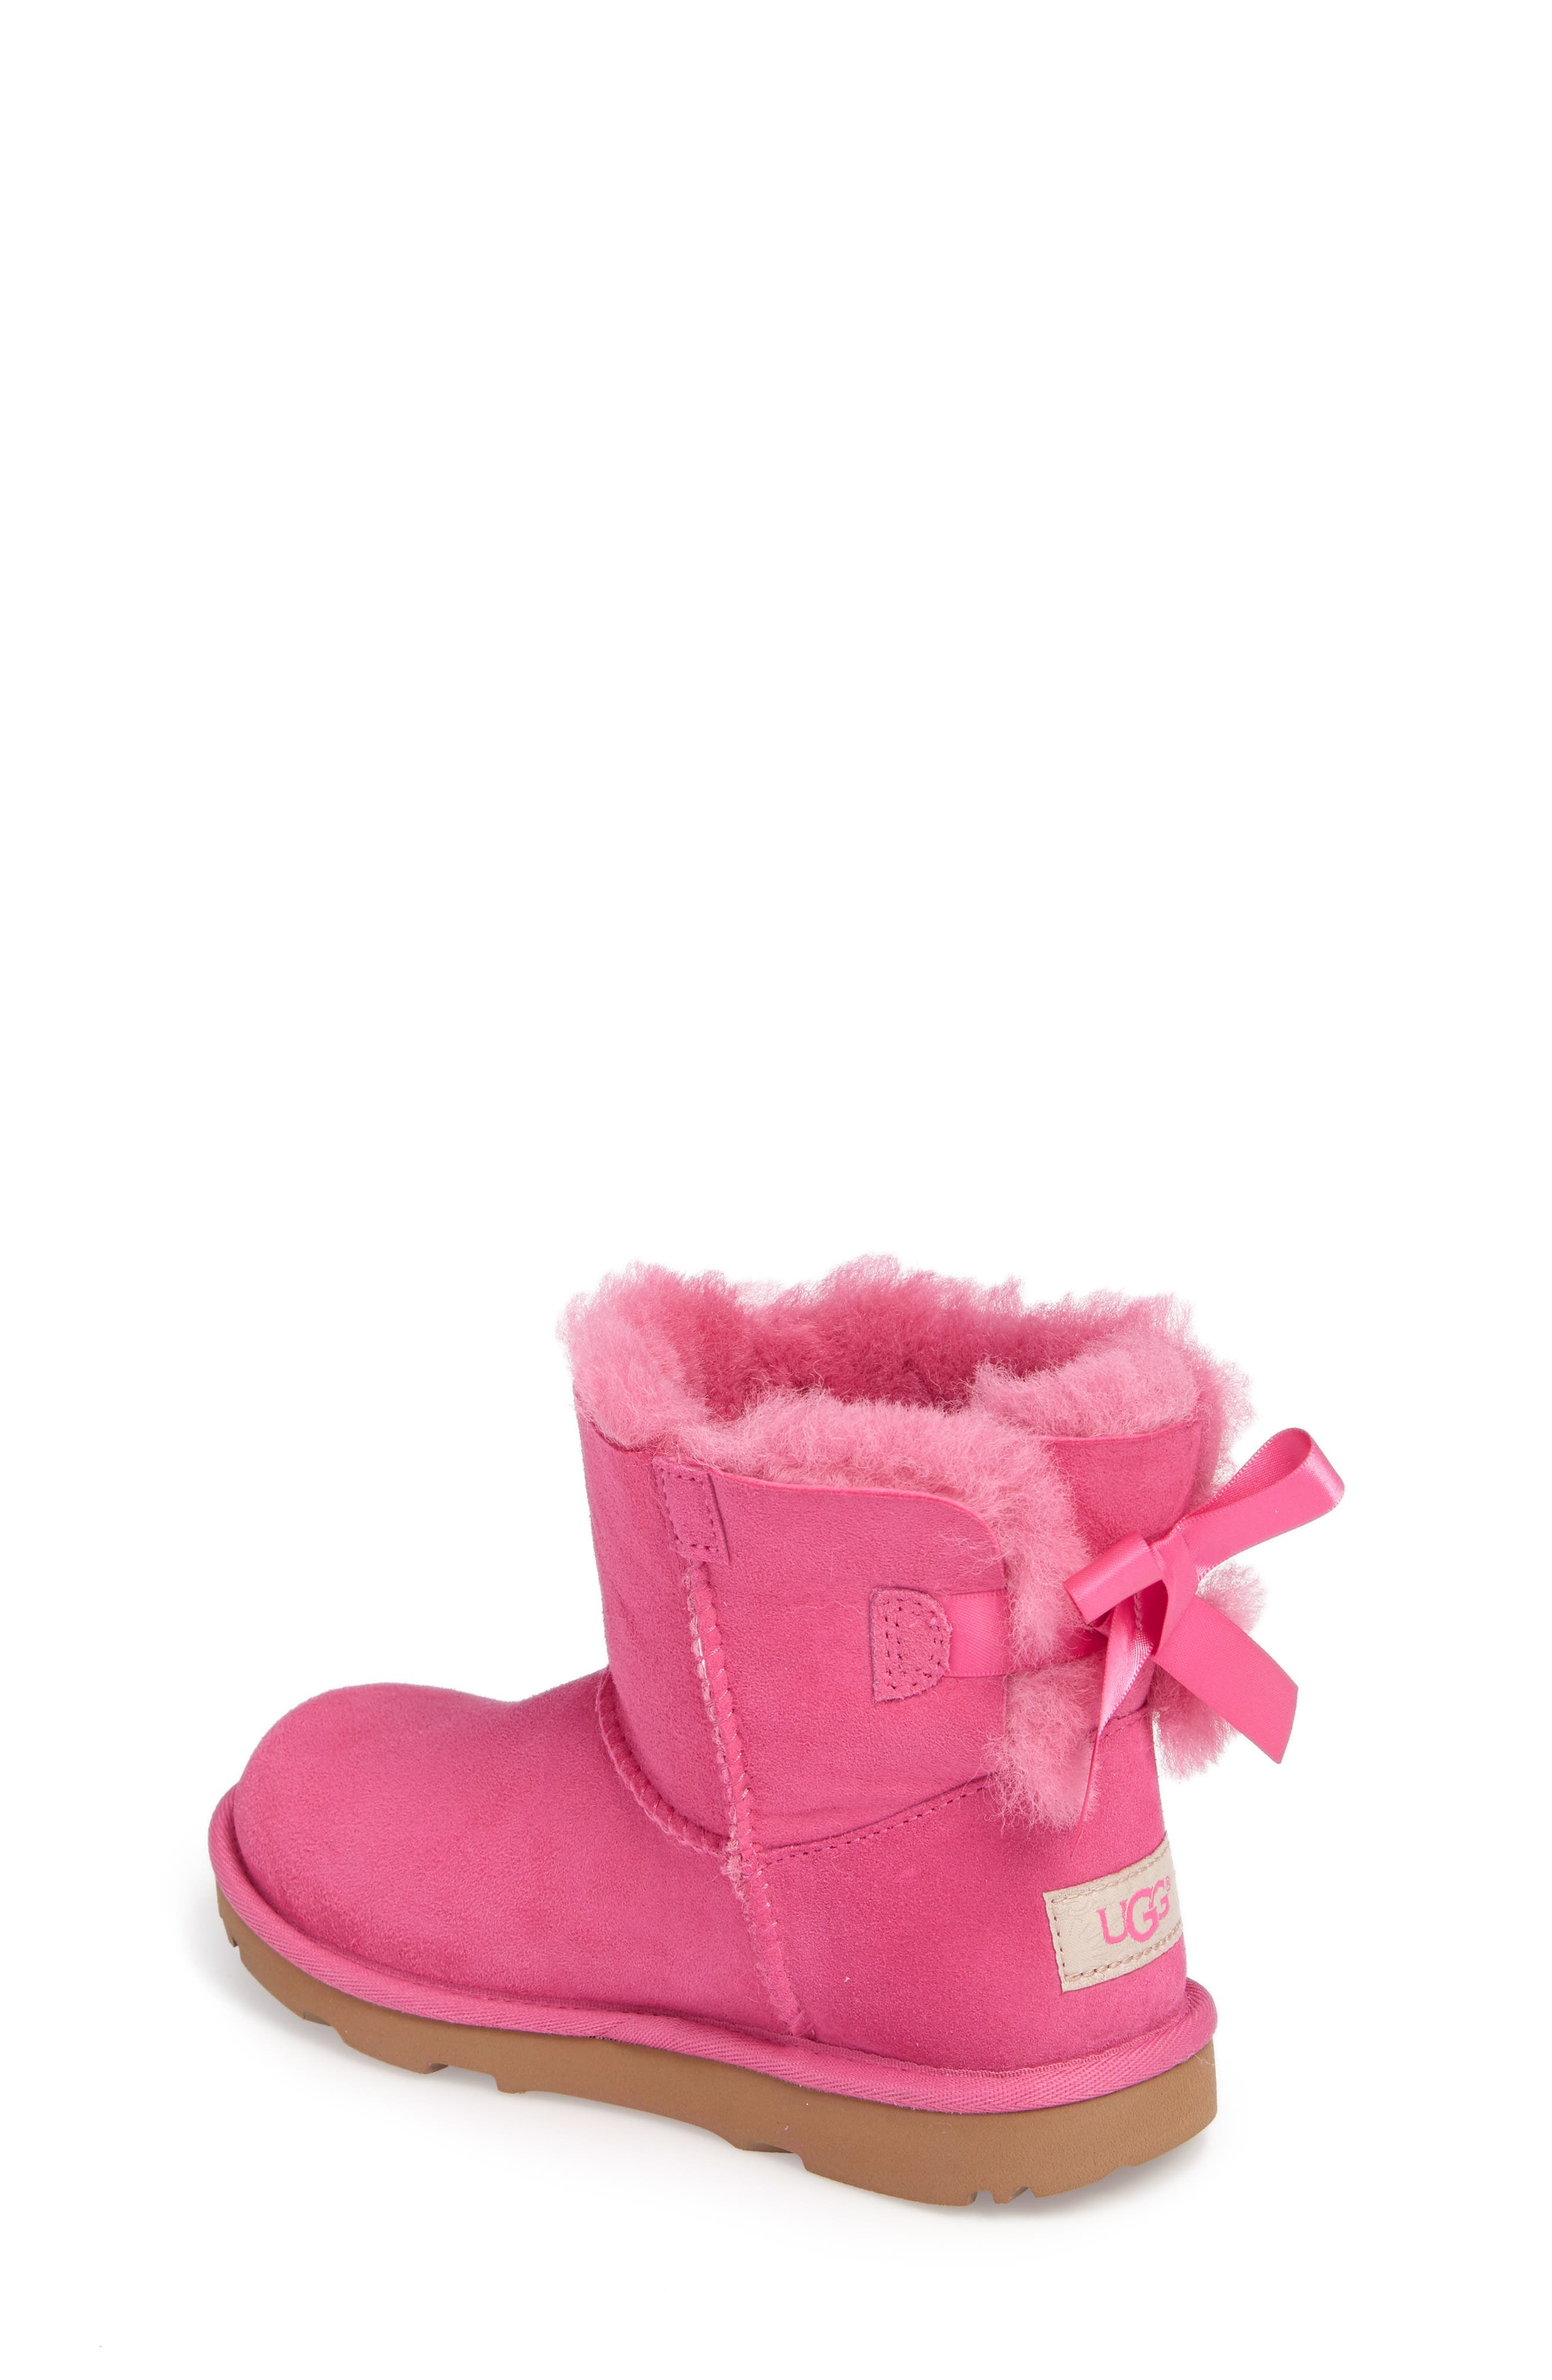 UGG<SUP>®</SUP>, Mini Bailey Bow II Water Resistant Boot, Alternate thumbnail 2, color, PINK AZALEA